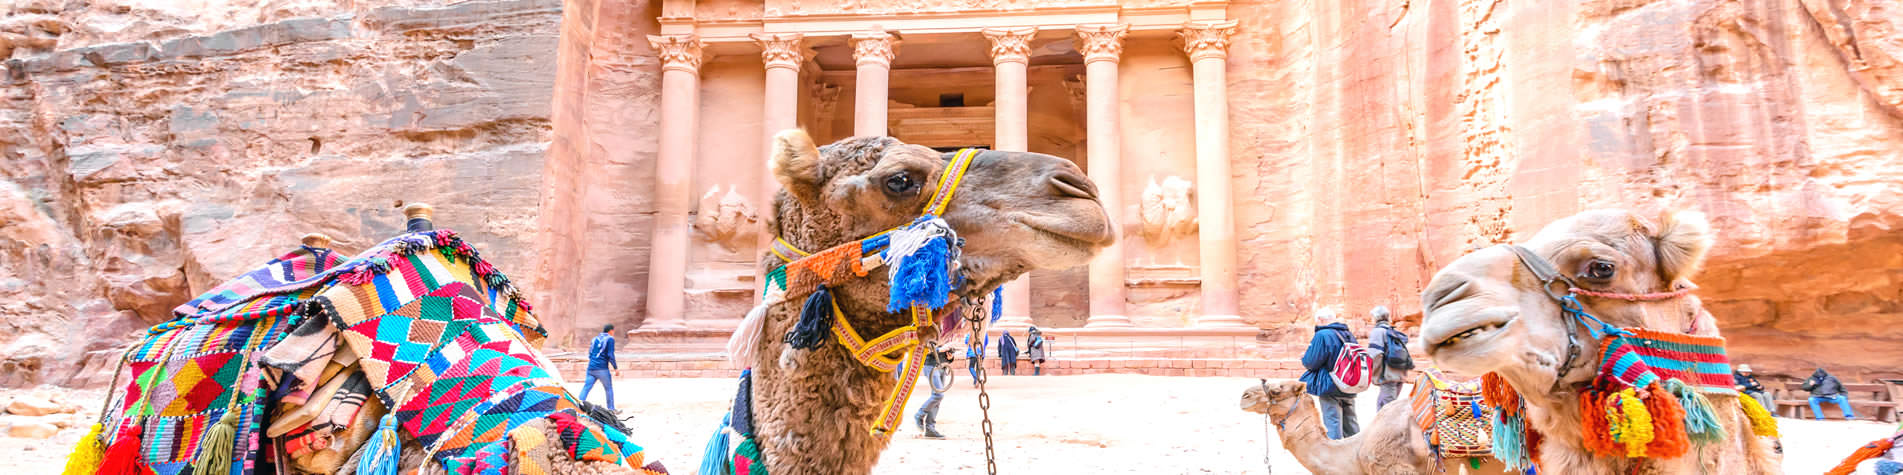 Guided Tour Holidays in Jordan